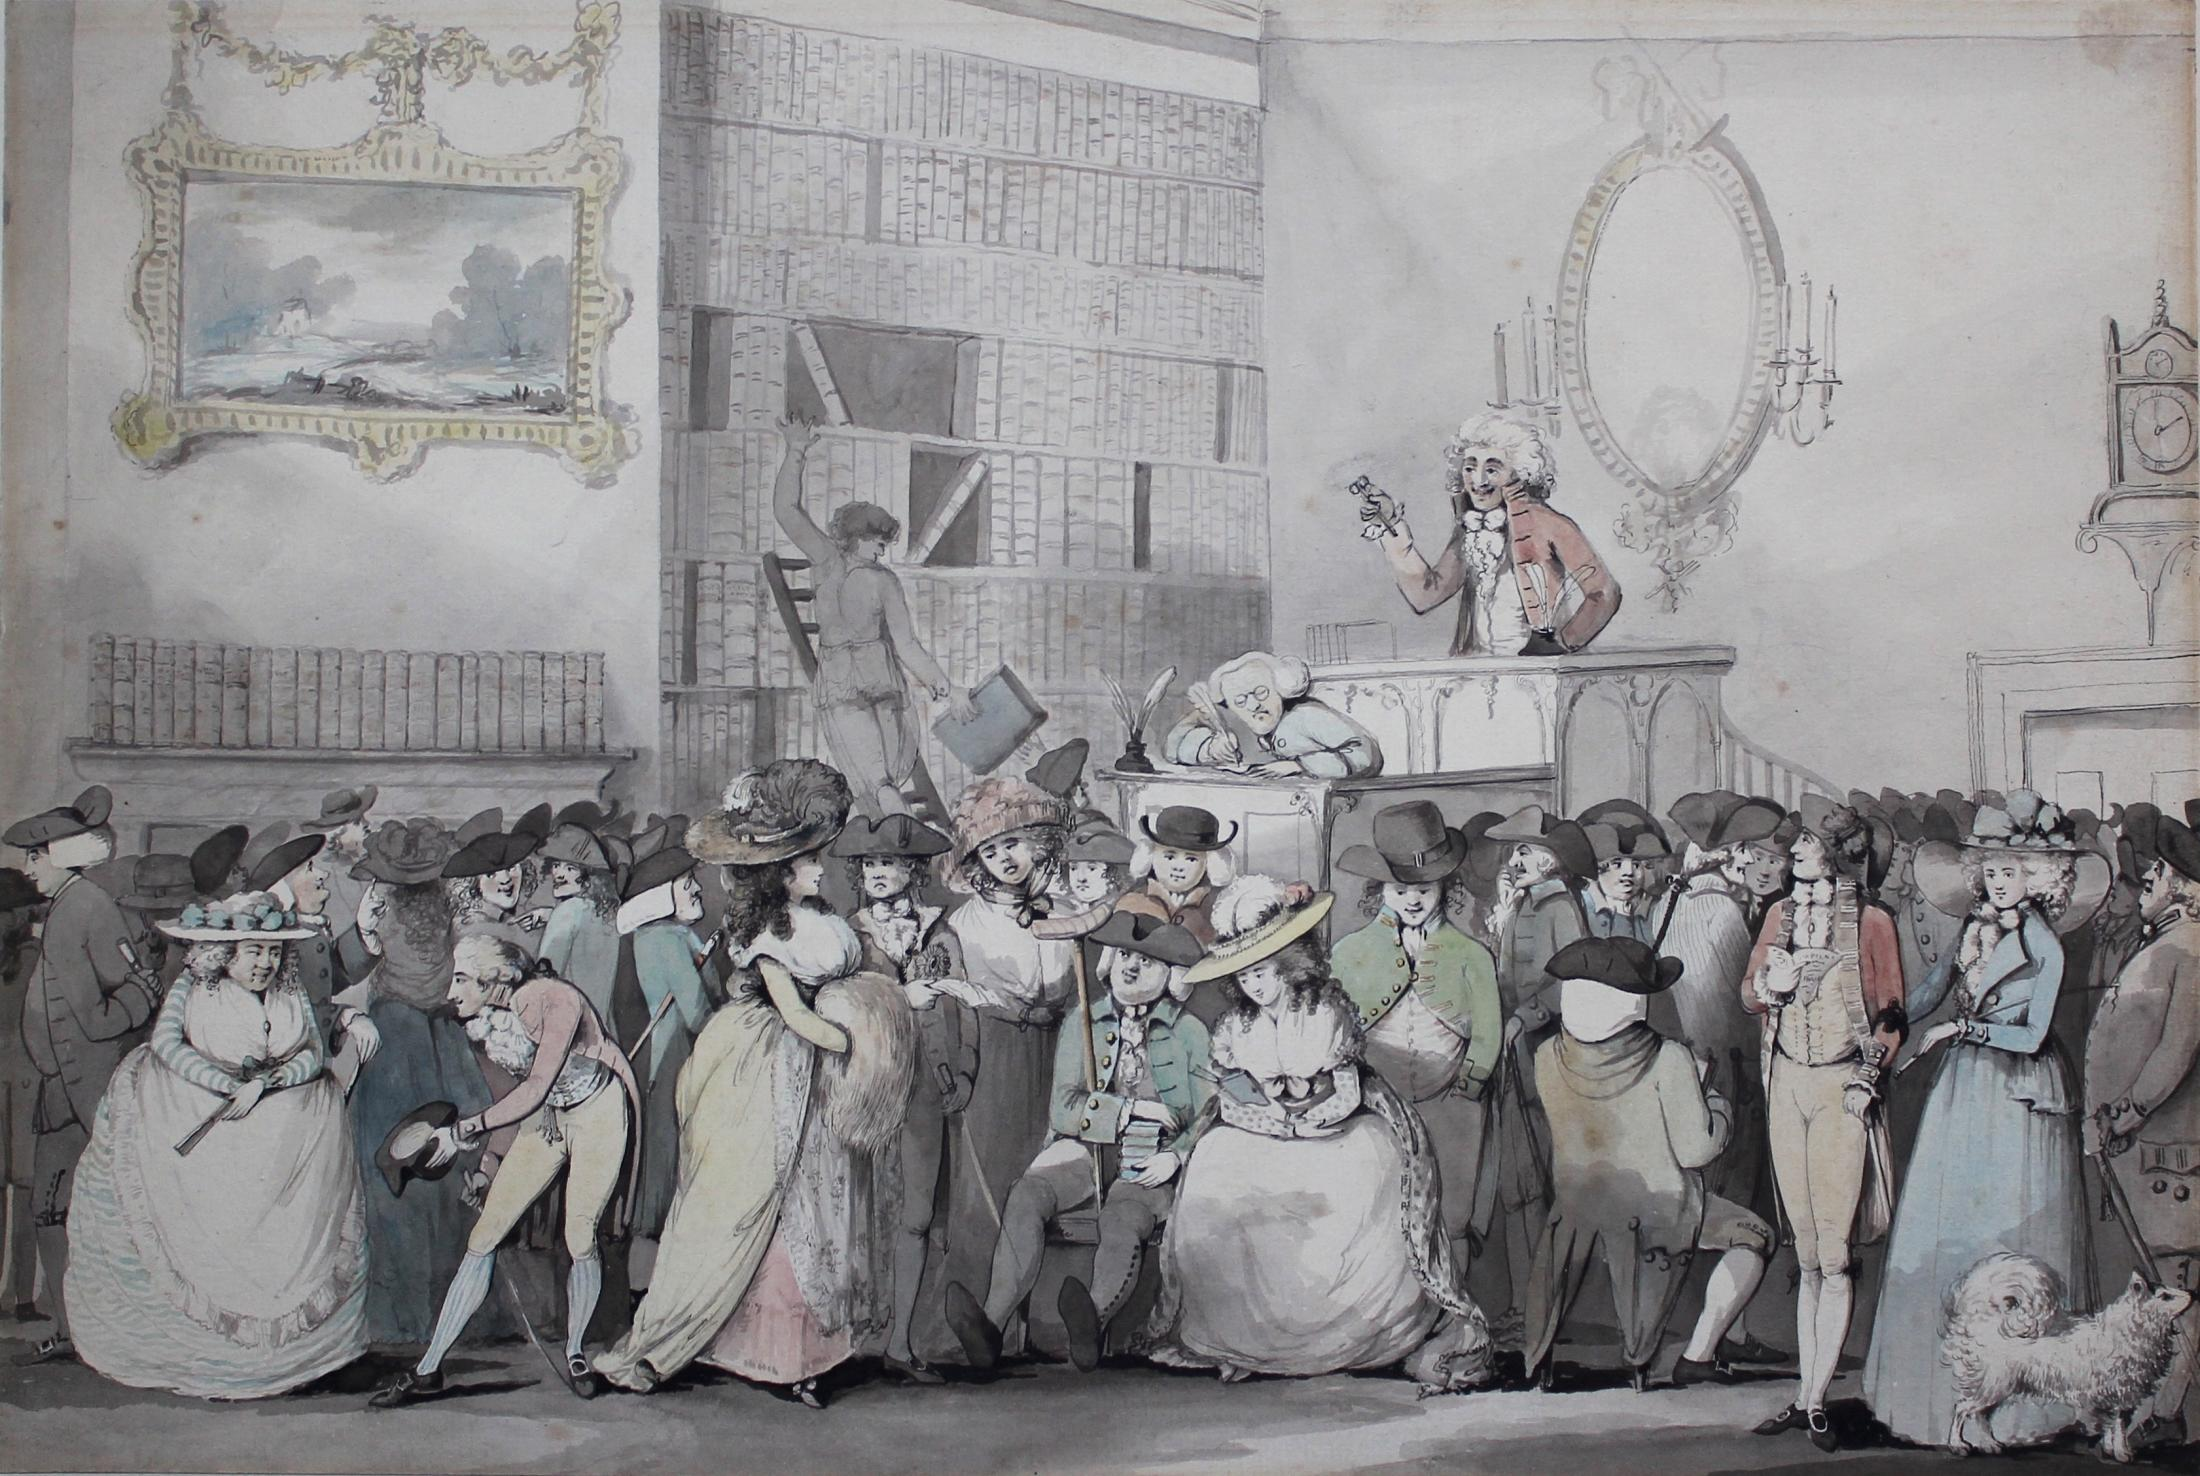 A Book Auction, probably at Sotheby's